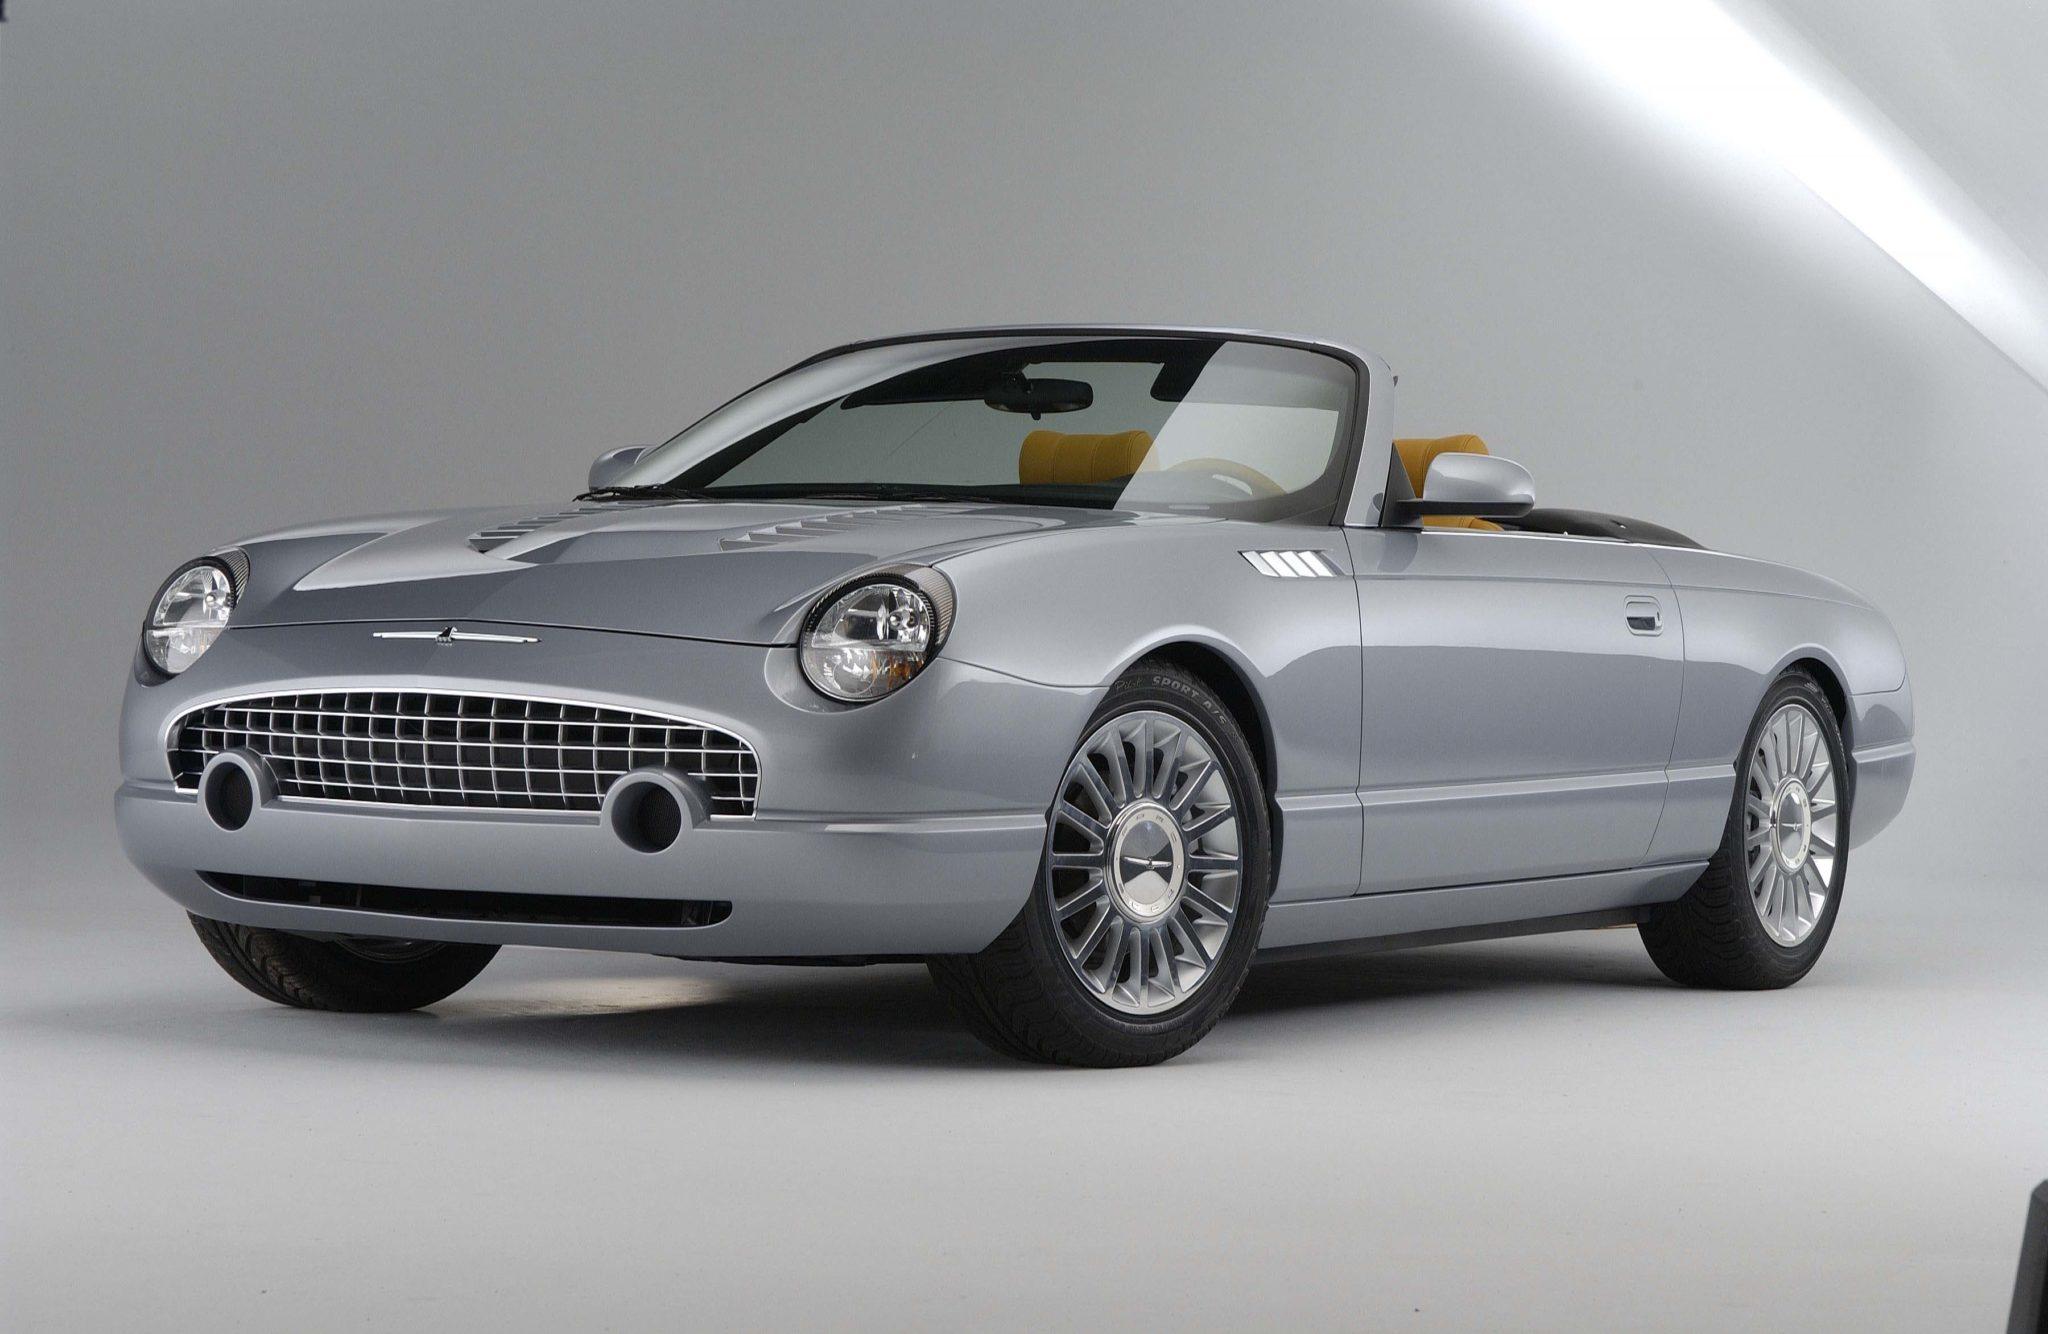 Fastest Car In The World 2015 >> 2003 Ford Thunderbird Supercharged Concept Car